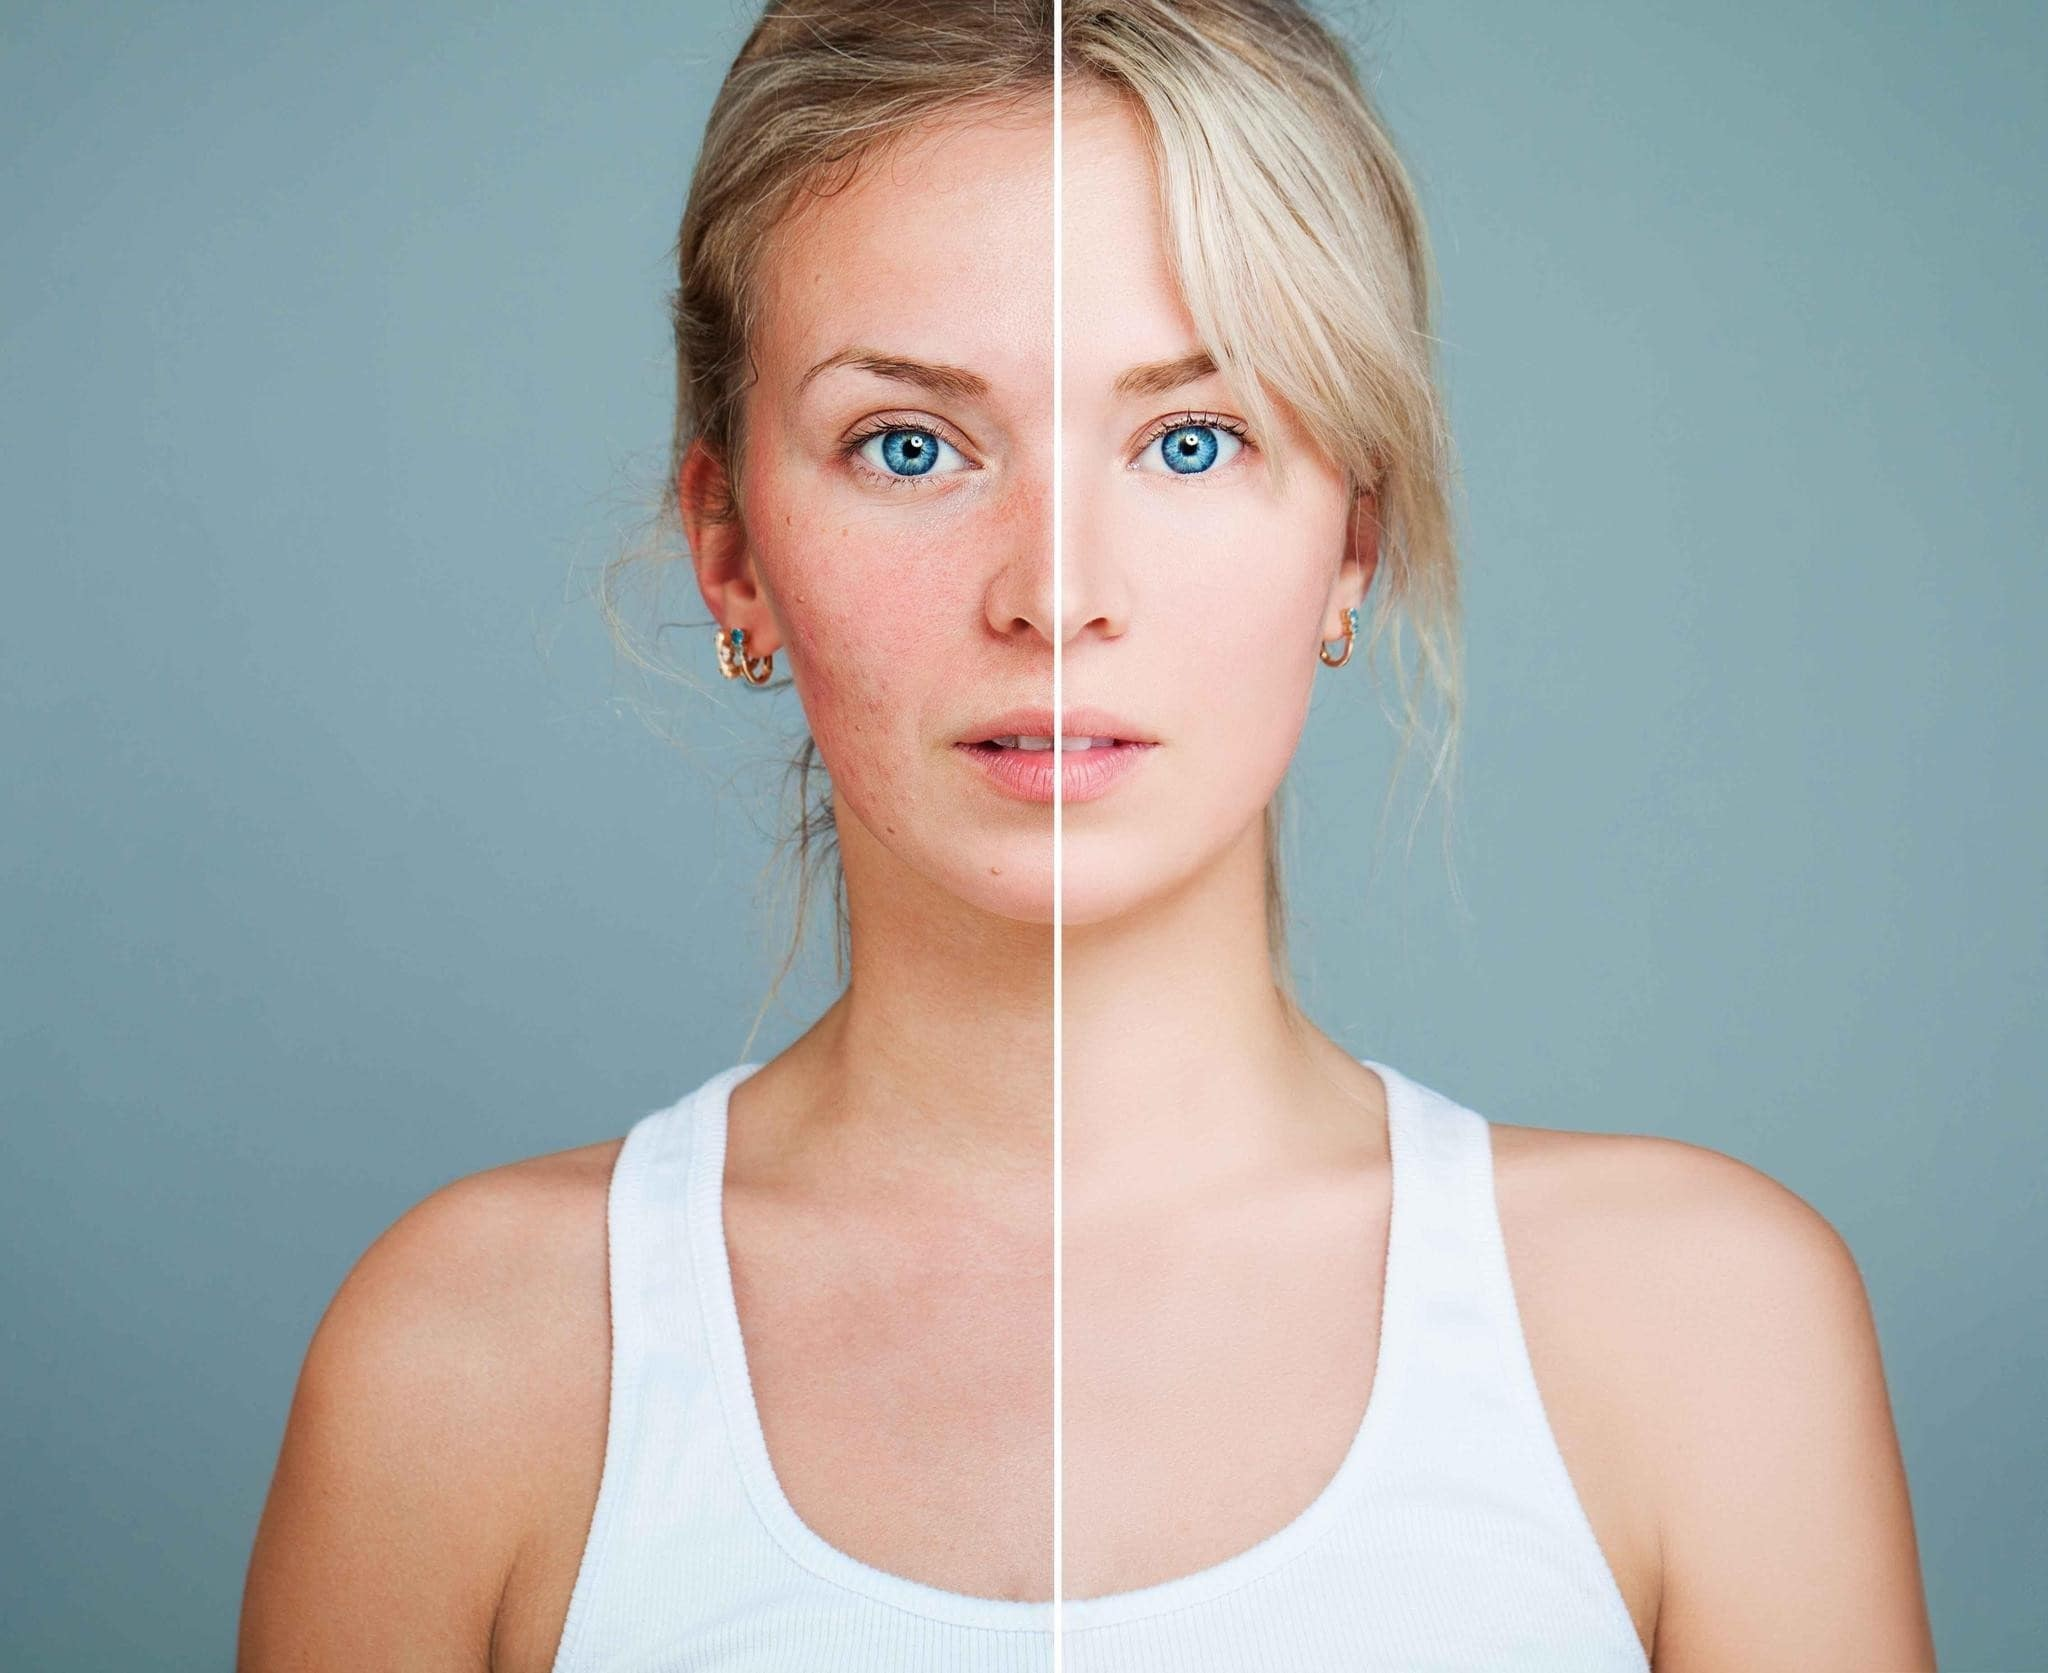 image of one woman, the image is split down the middle. The left hand side shows the woman with red, sore skin, whereas the other side appears clear.